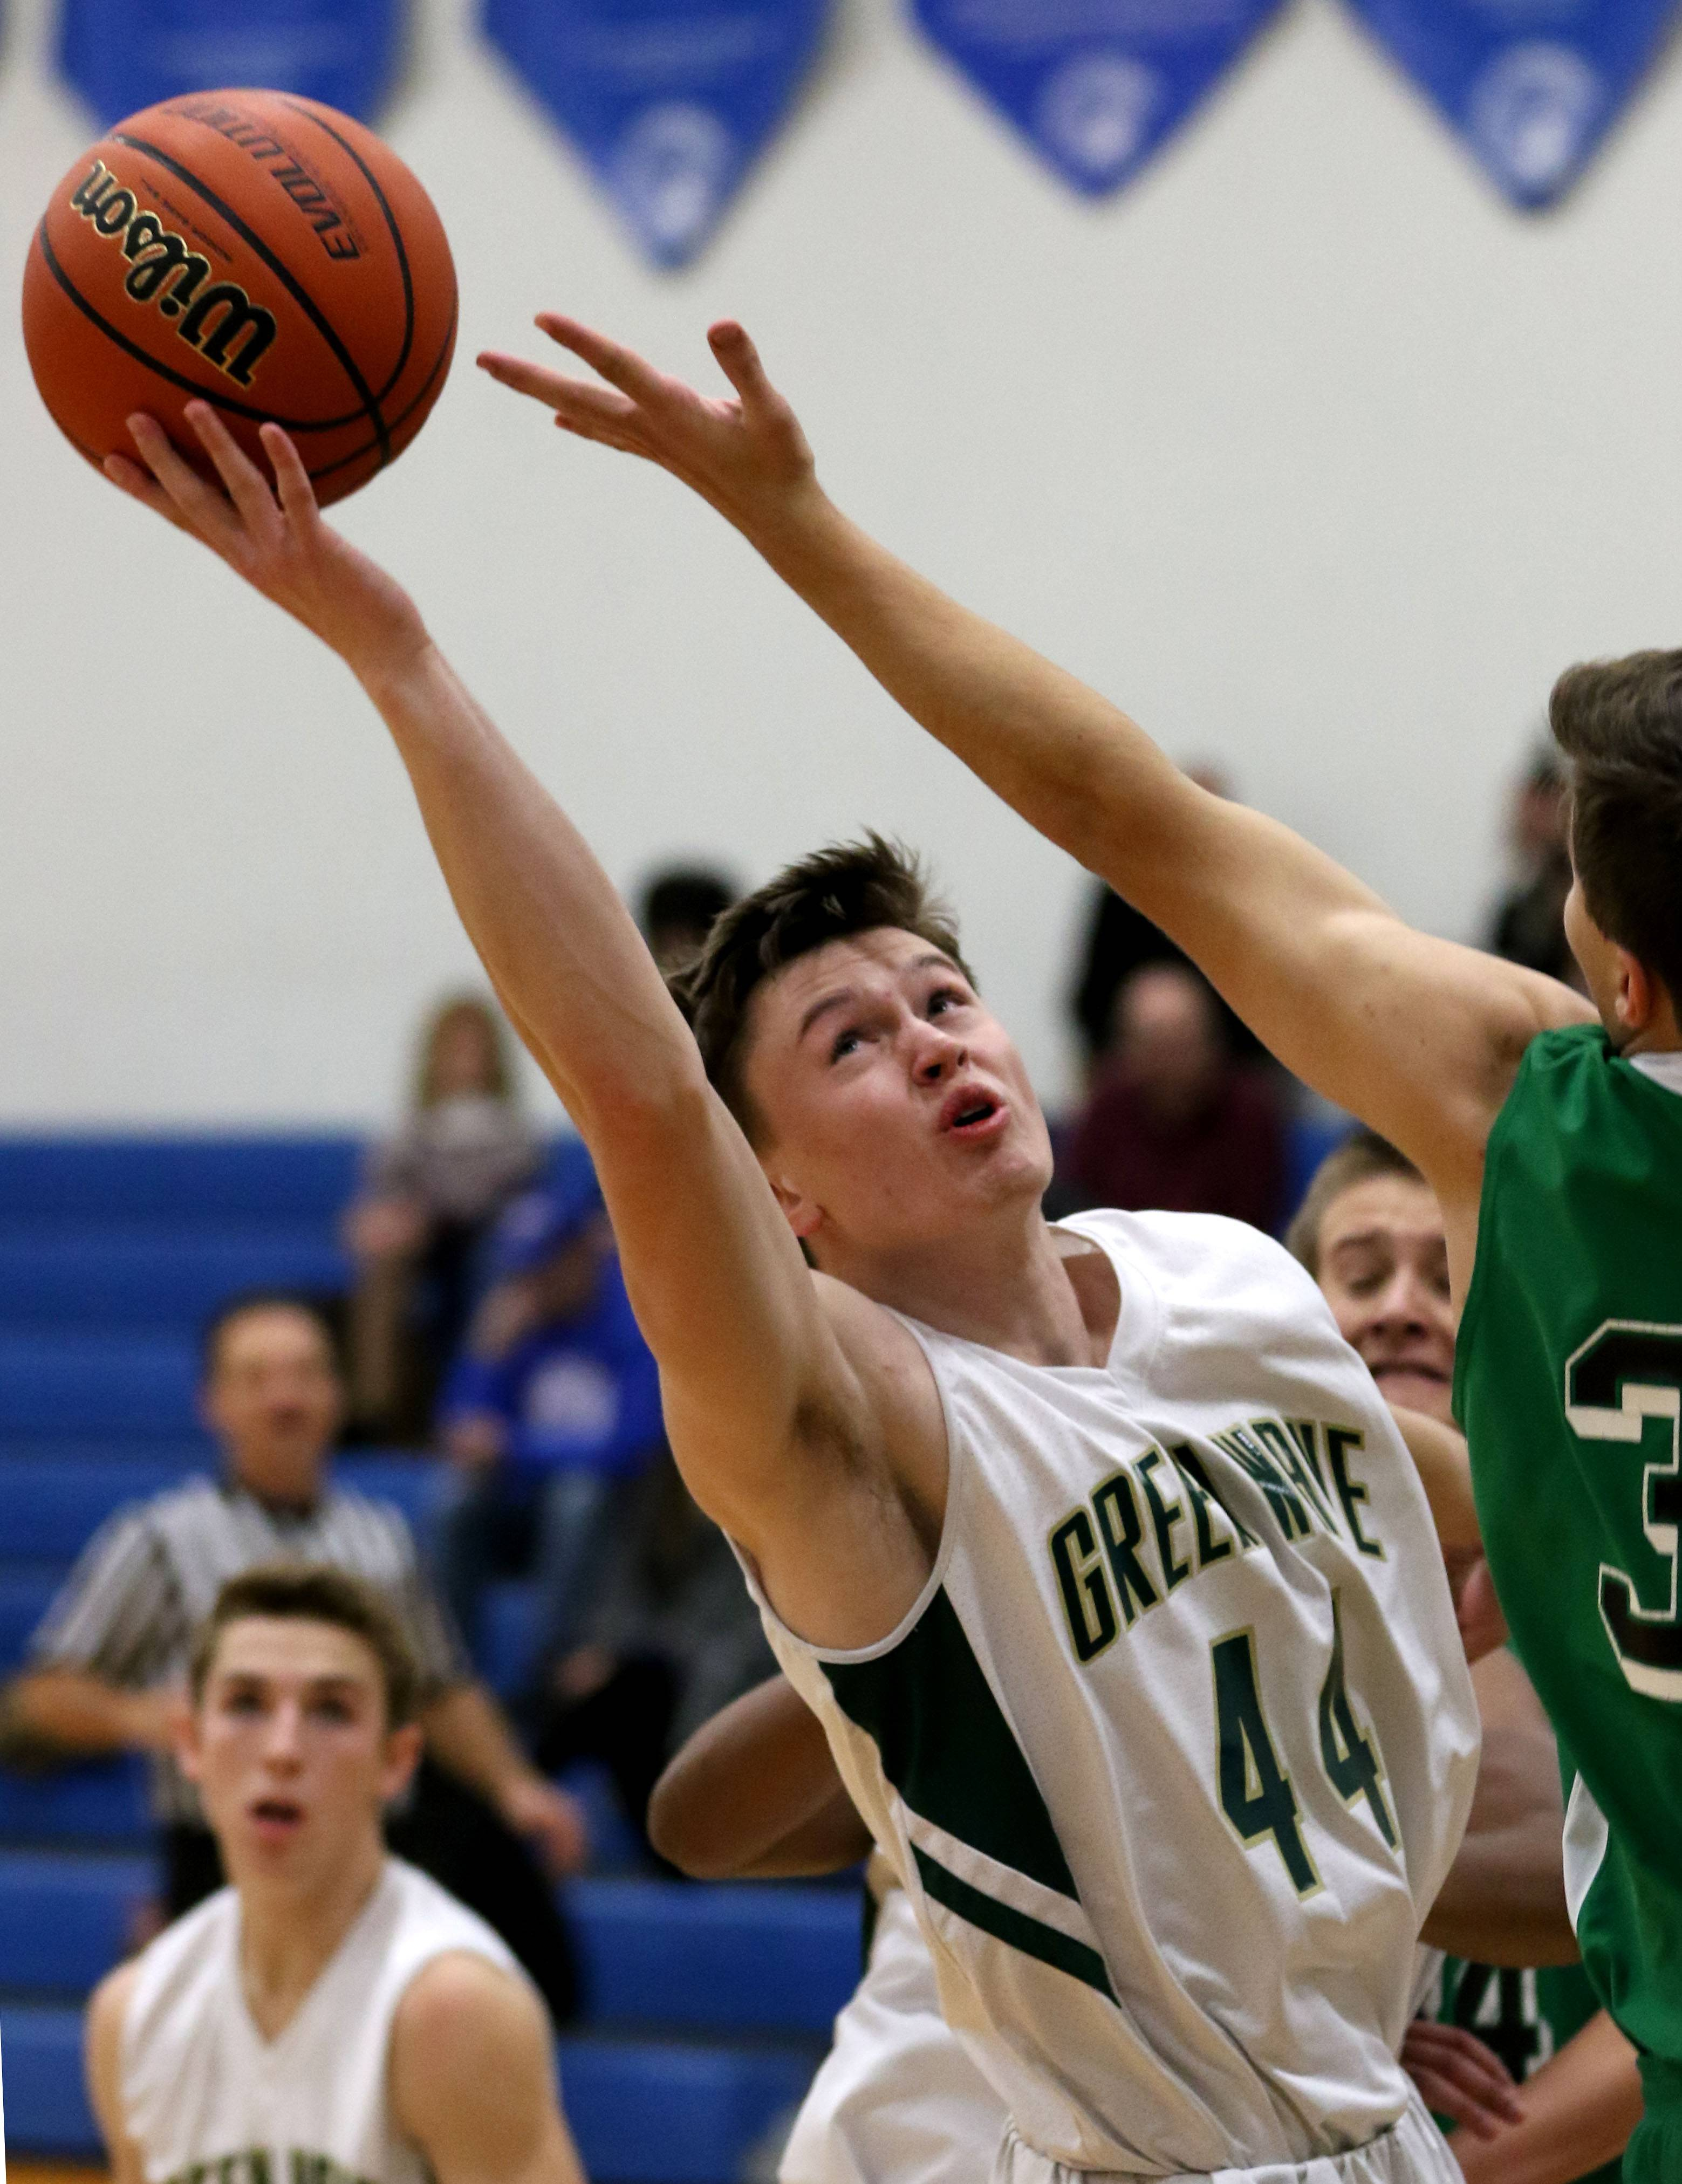 St. Edward's Collan O'Neill grabs a rebound in front of Alden-Hebron's Kyle Judson on Monday in boys varsity basketball action at the 11th Annual Westminster Christian Thanksgiving Tournament.